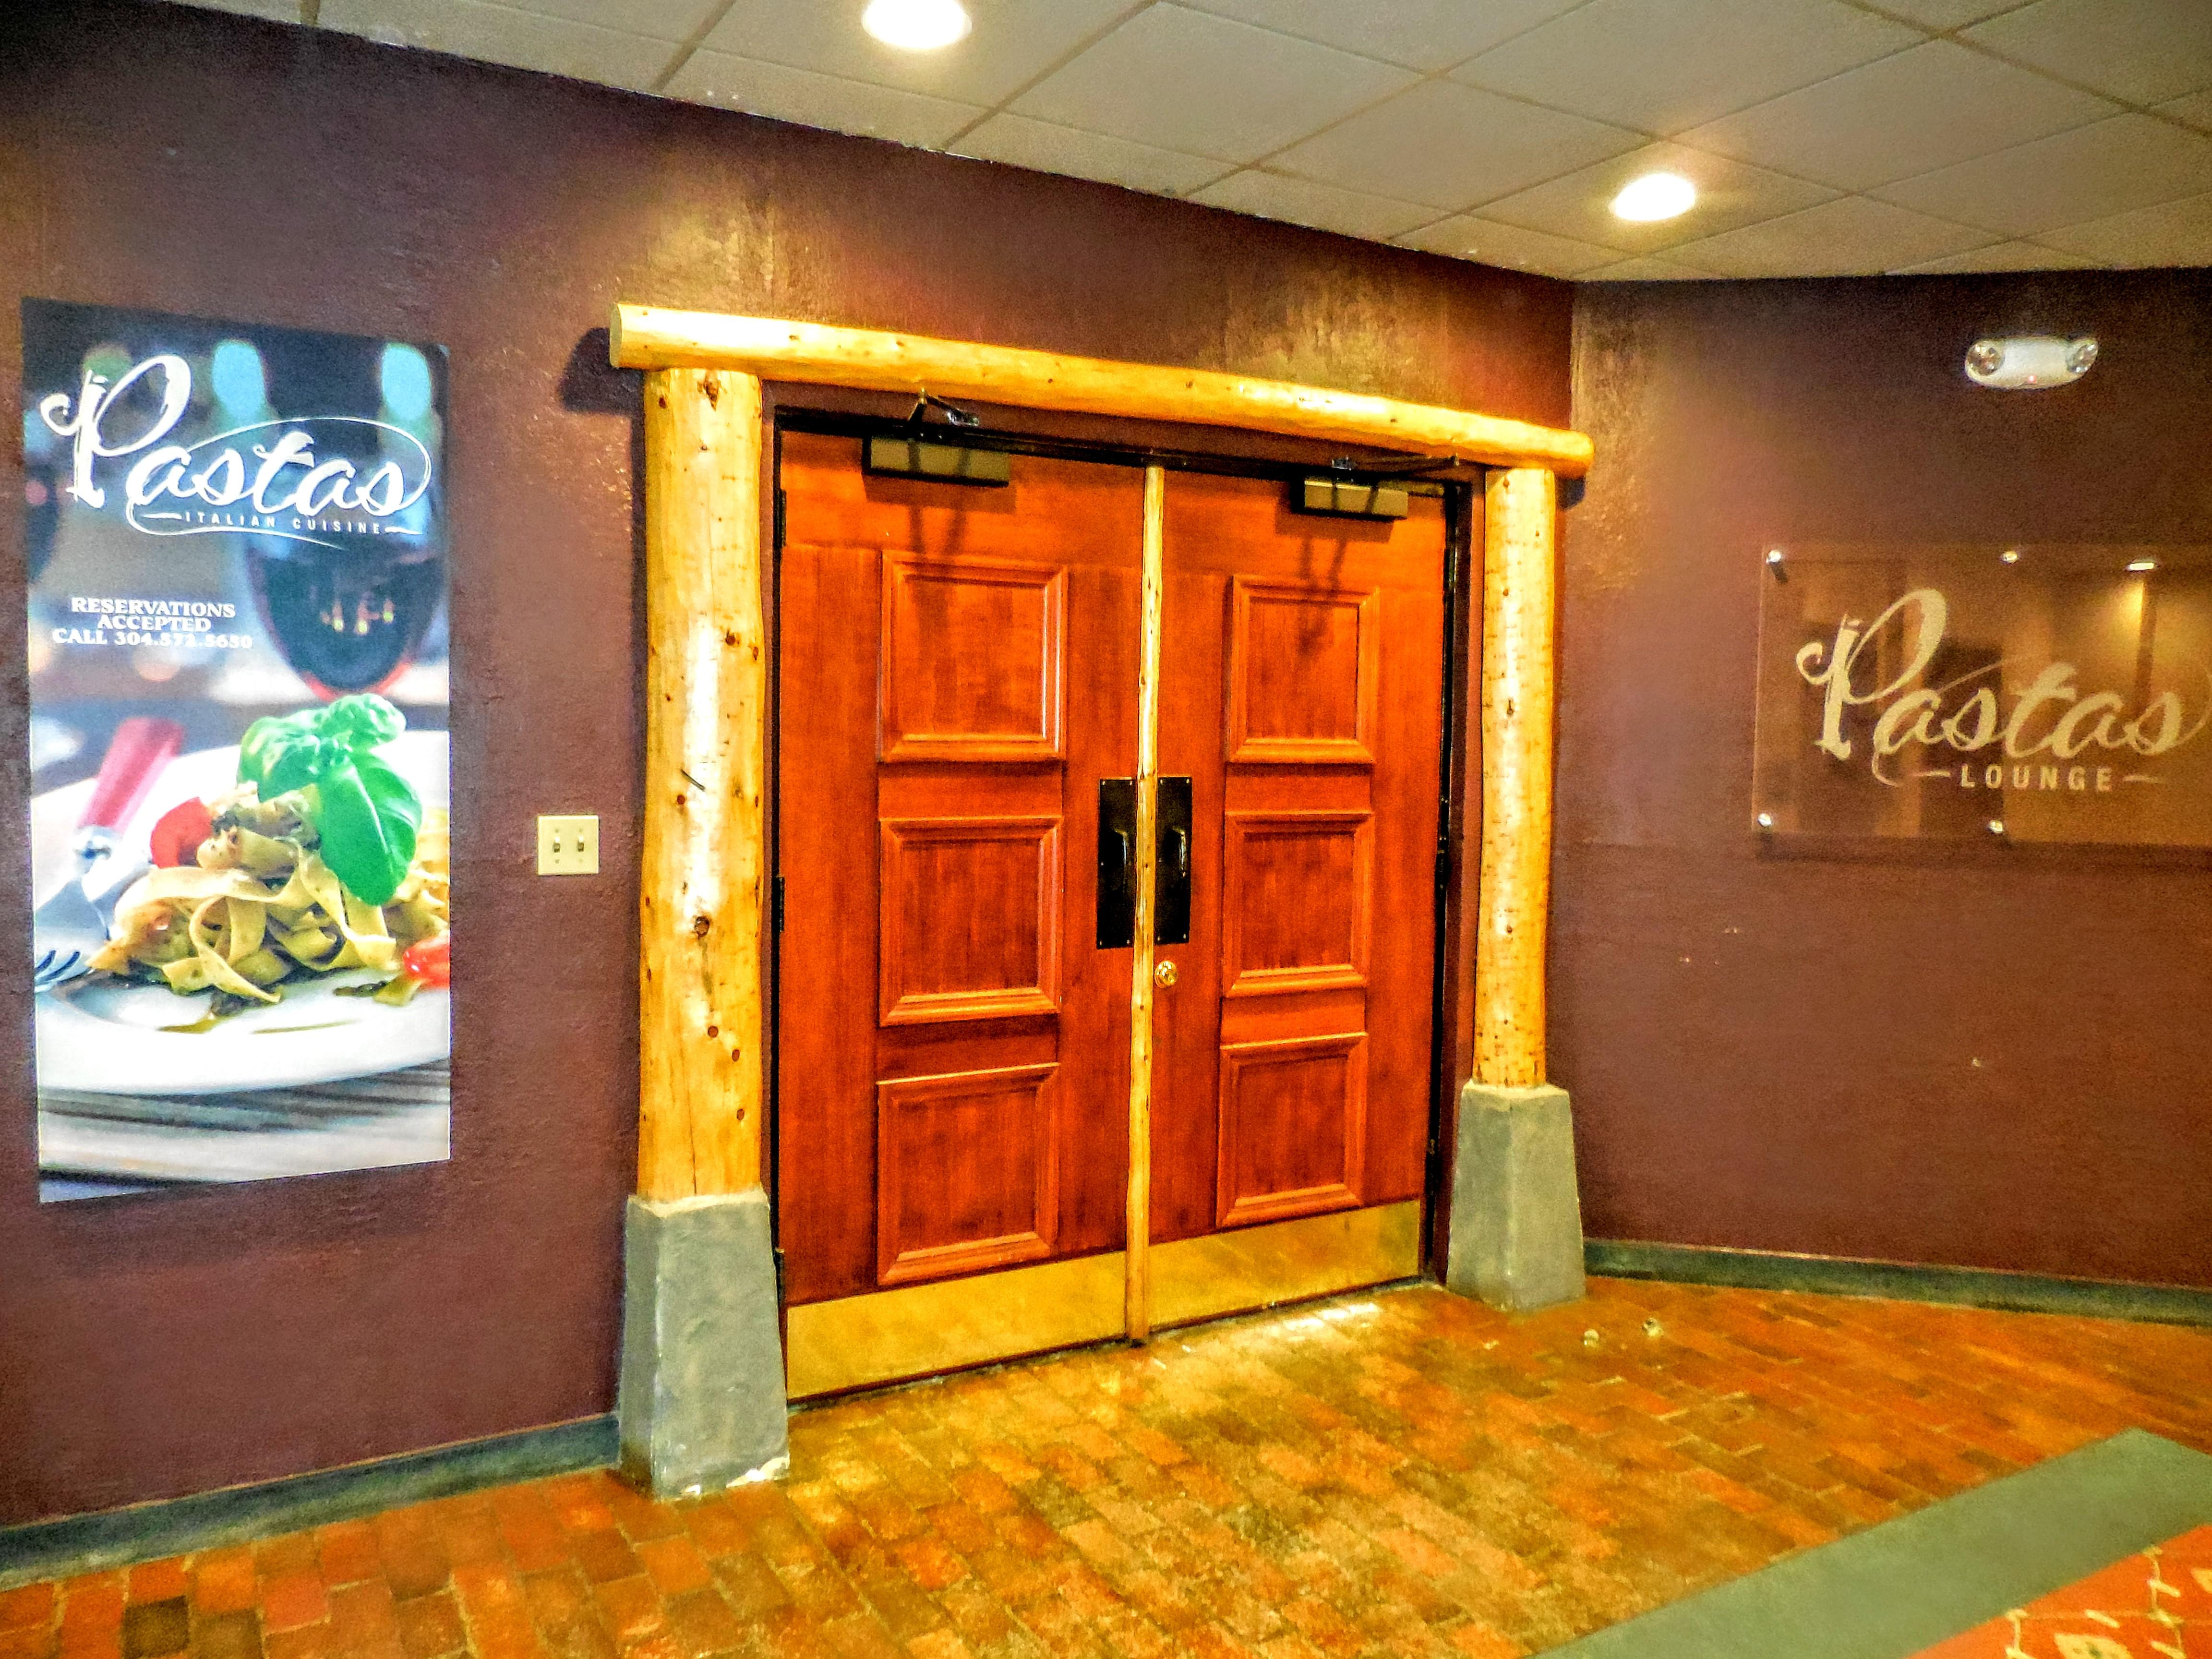 Pasta's Italian restaurant & lounge is located in the lower level of our building (winter)